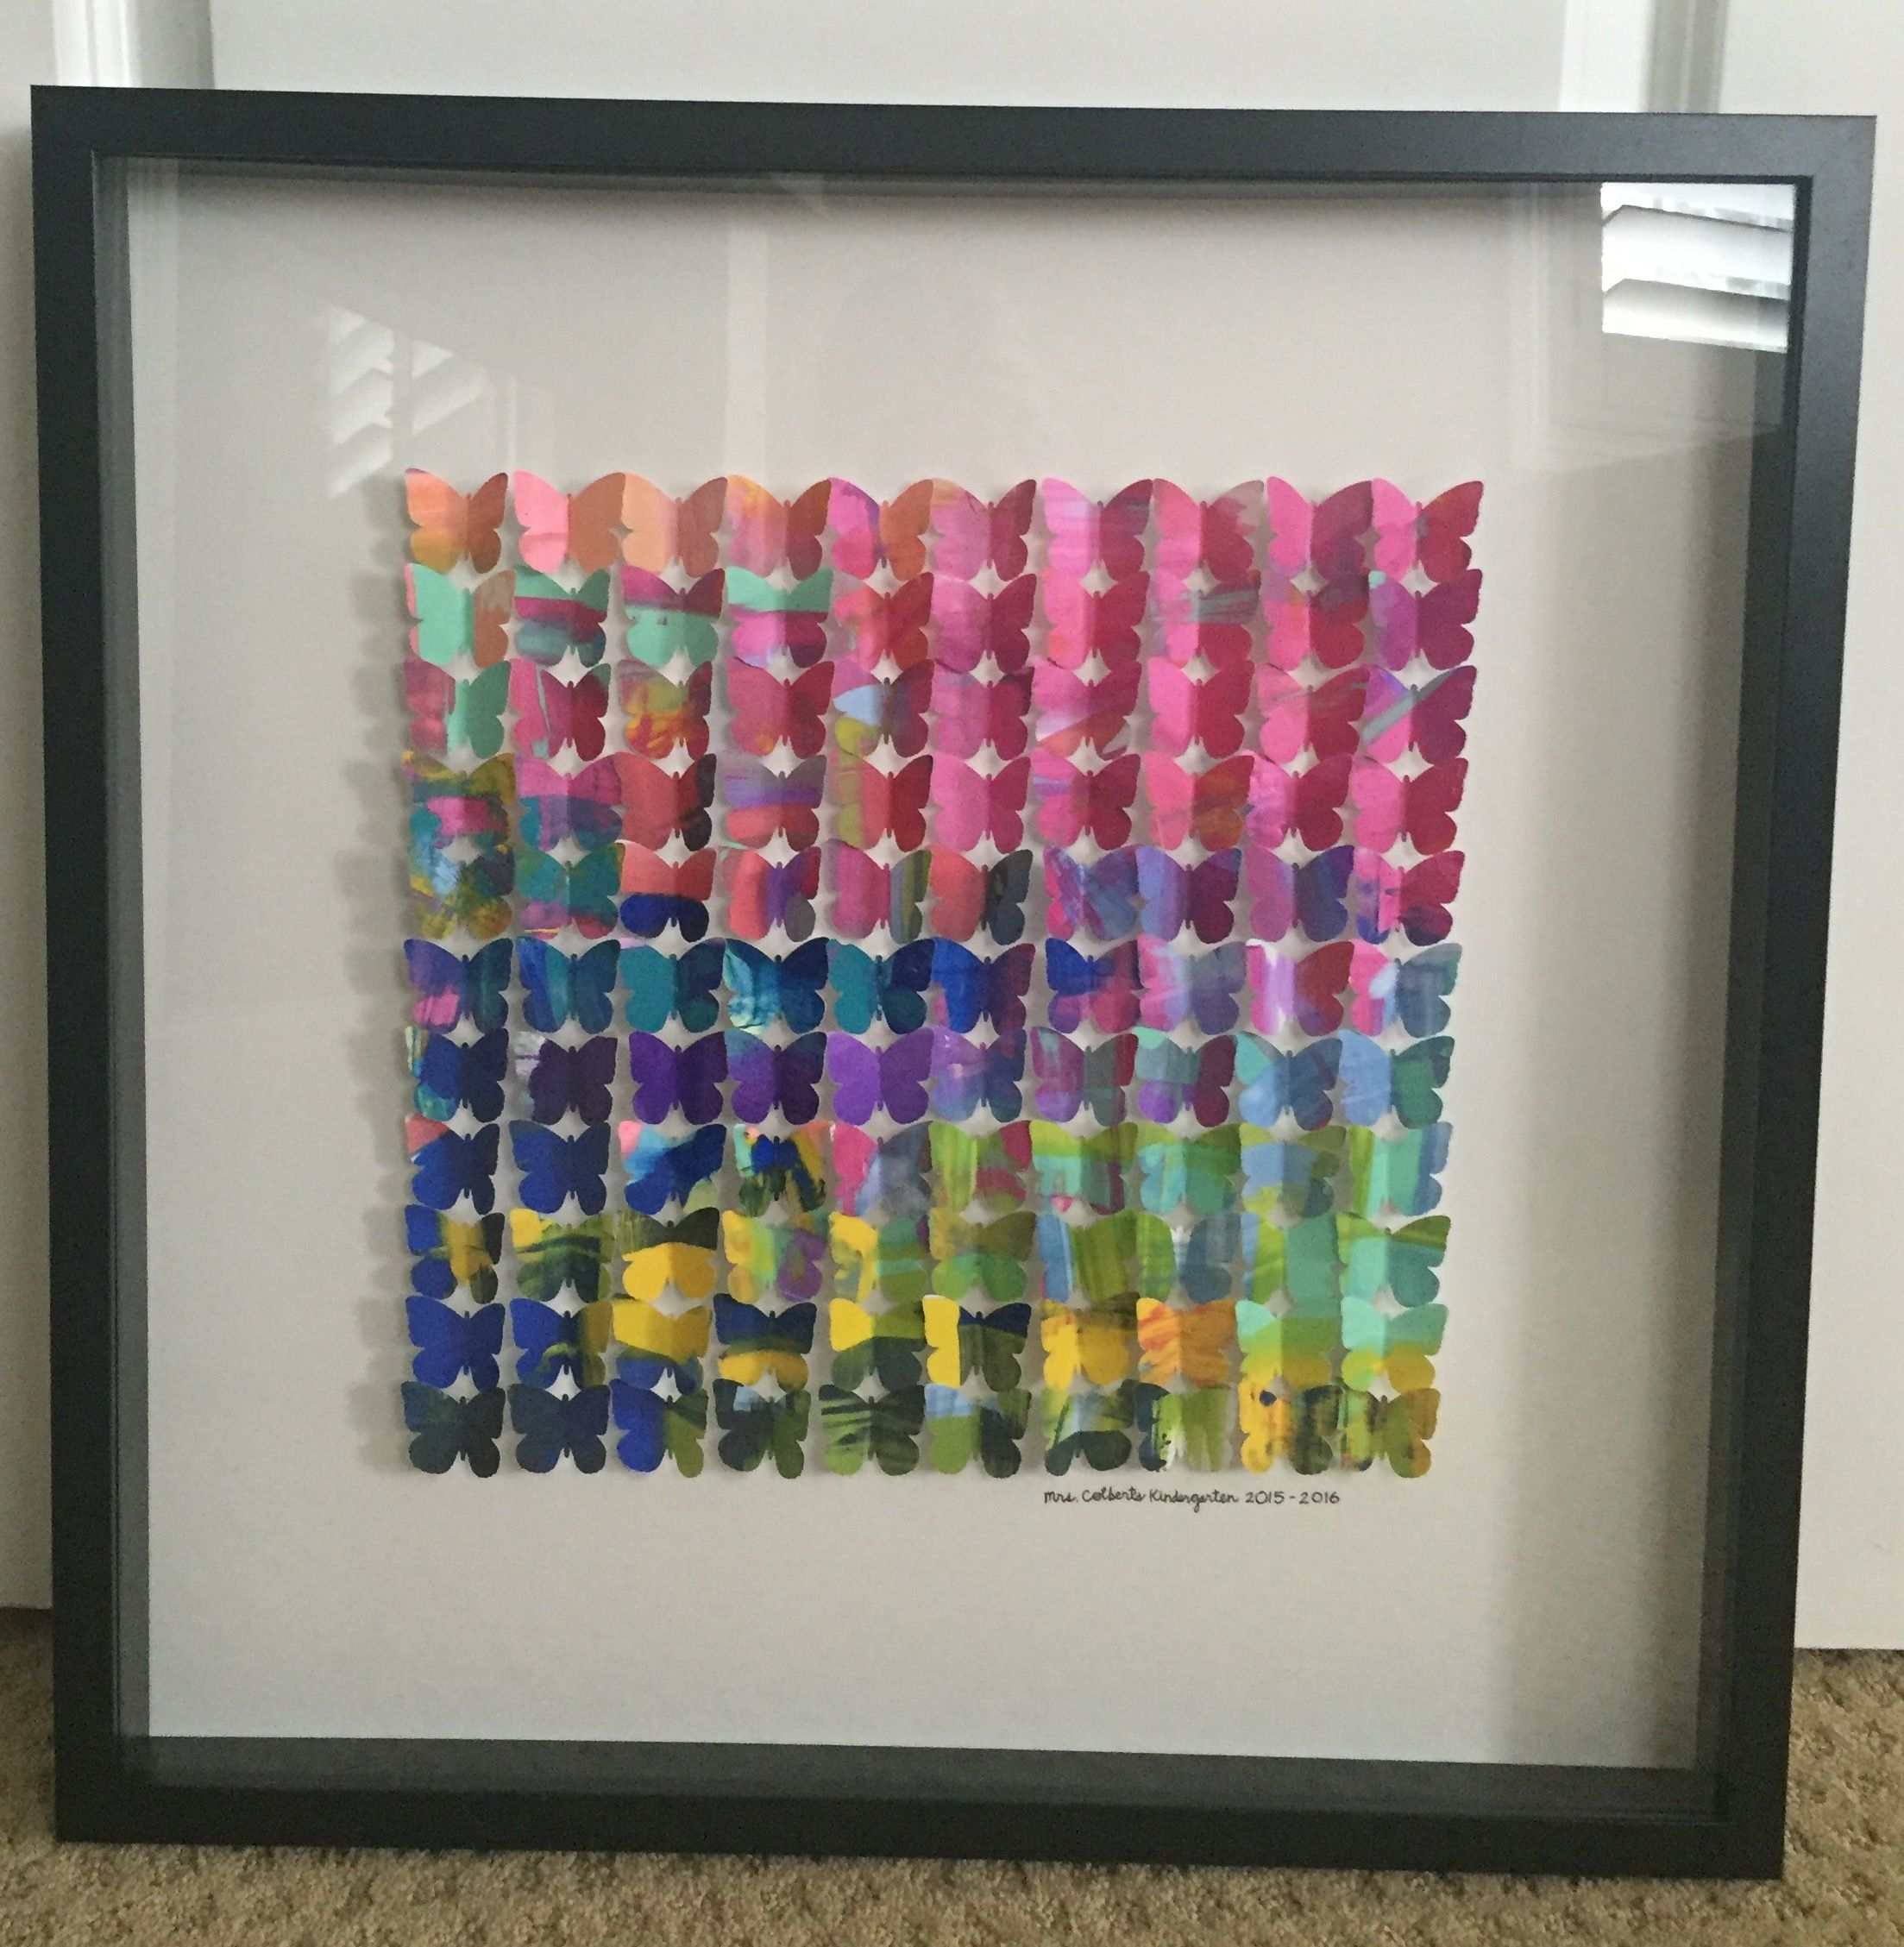 Our Kindergarten Class Art Project For Our School Auction